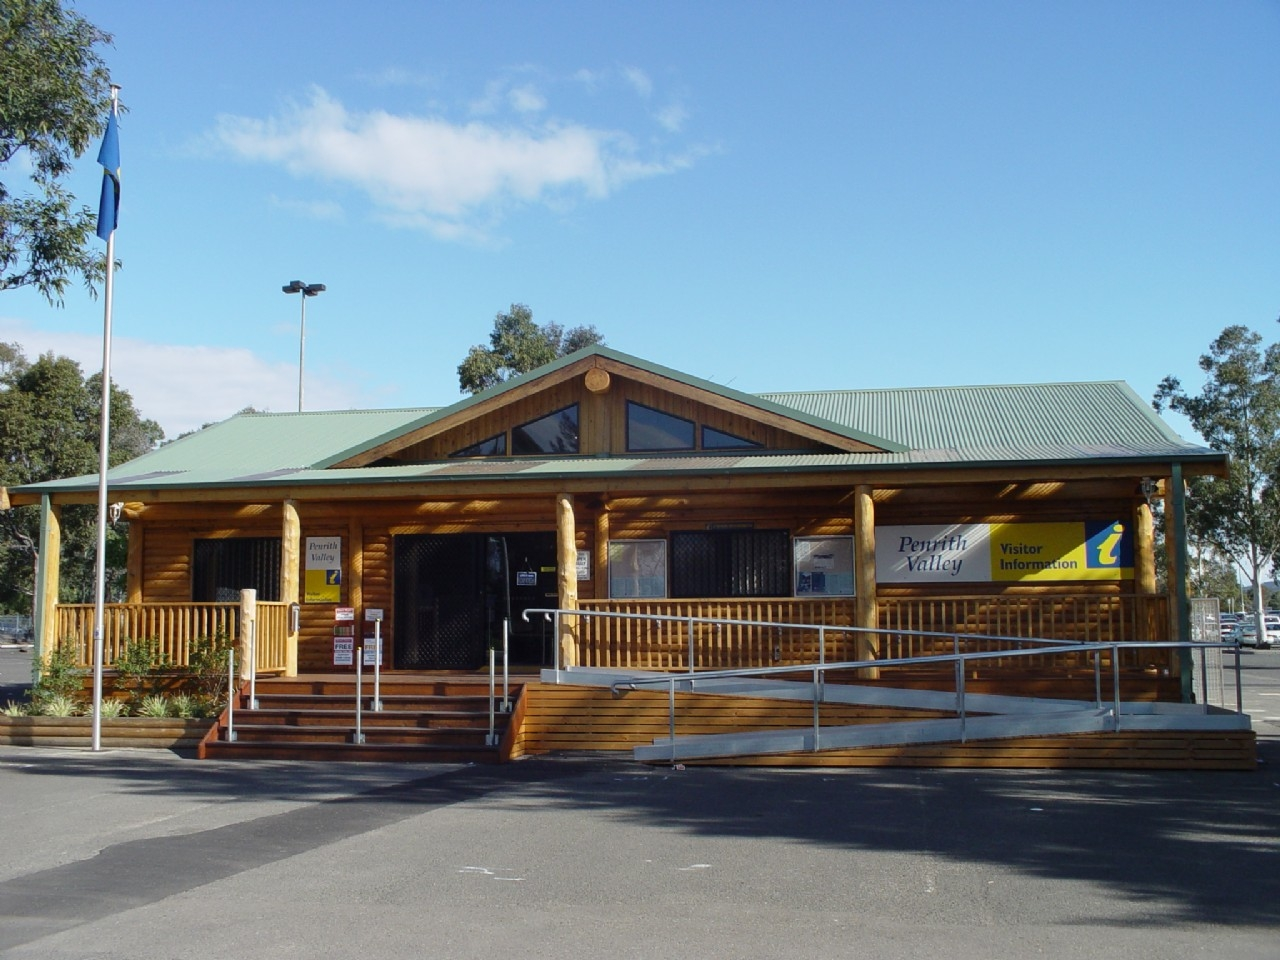 Penrith Visitor Information Centre